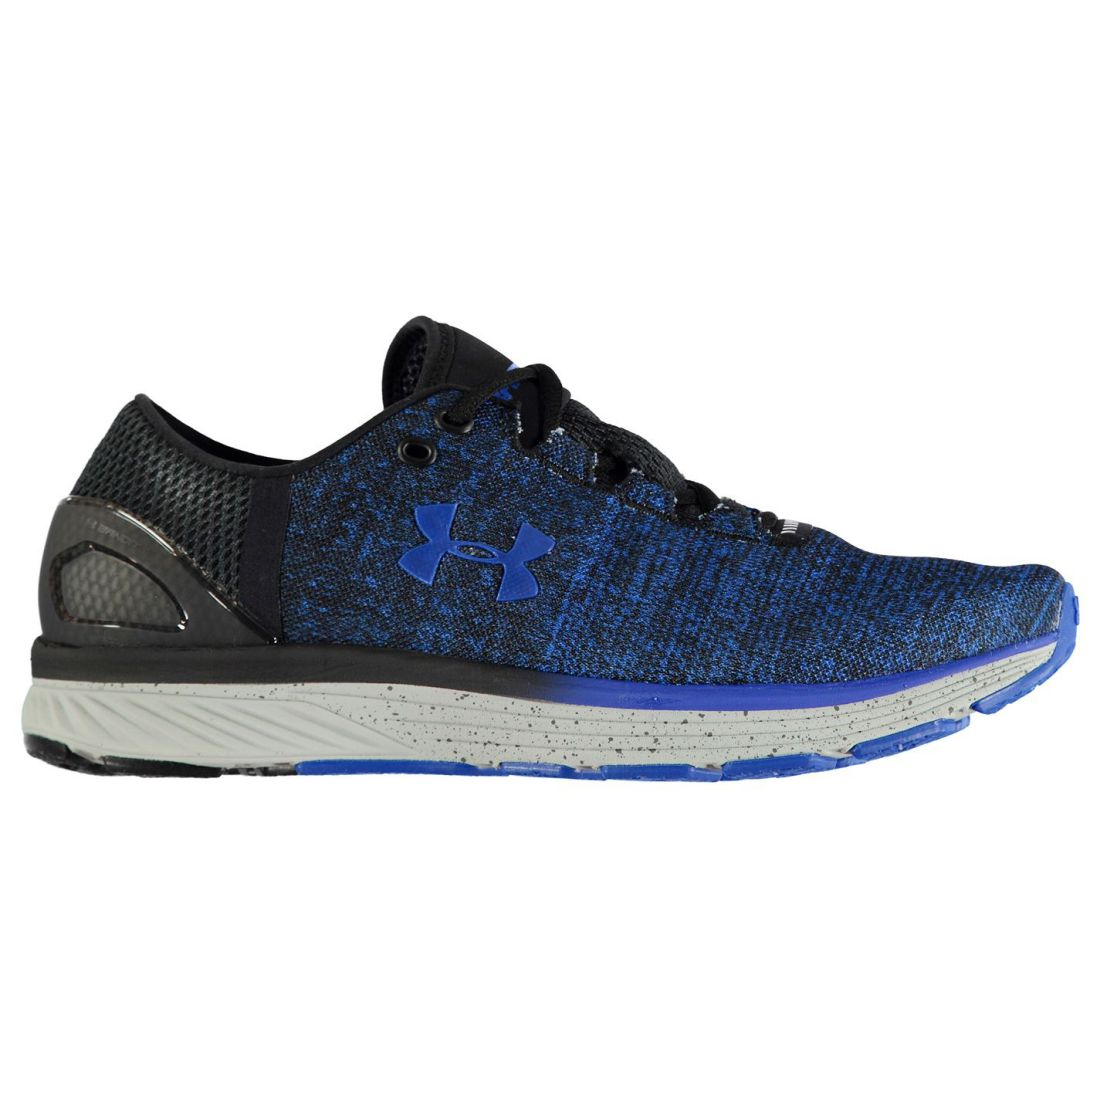 Under Armour Charged Bandit 3 Running Shoes Mens Gents Road Laces Fastened